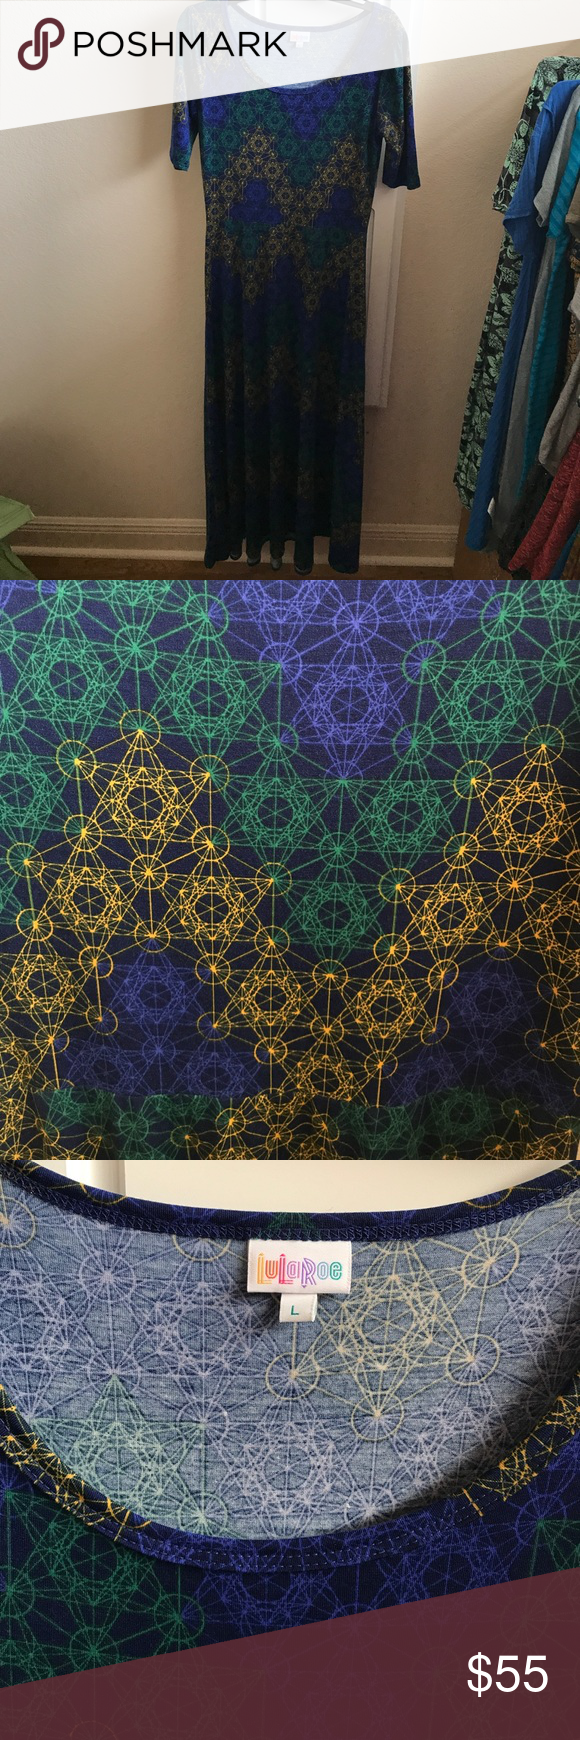 Large LuLaRoe Ana Worn Once for Church Beautiful, Vibrant Ana. EUC, no signs of wear. I wore it once to church for about an hour and a half. Didn't wear it again. Smoke and Pet Free Home. Blue, green, yellow. LuLaRoe Dresses Maxi